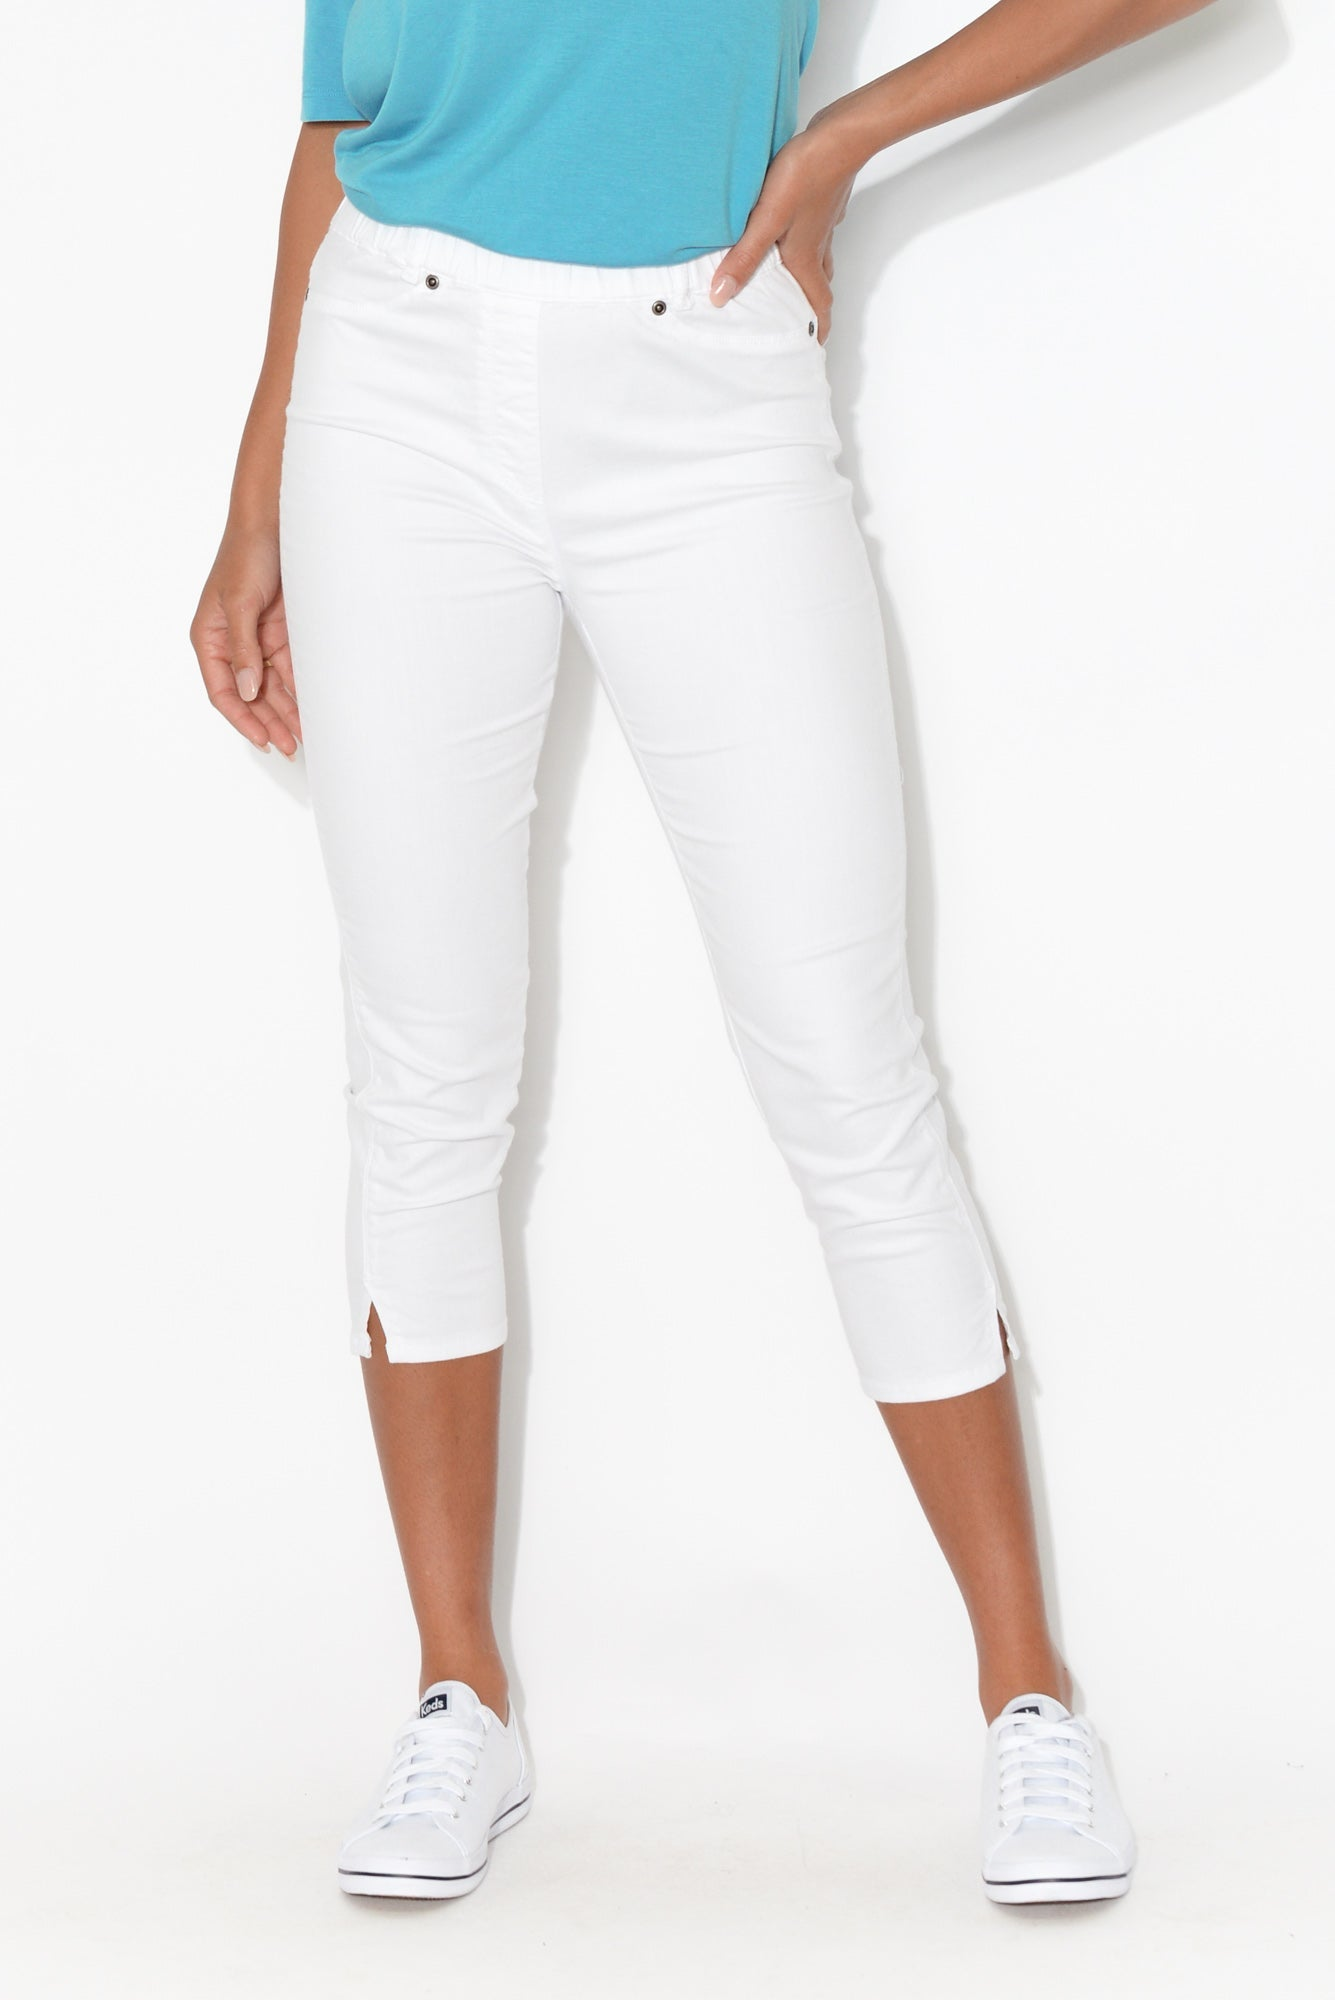 Reed White Stretch Cotton Capri Pant